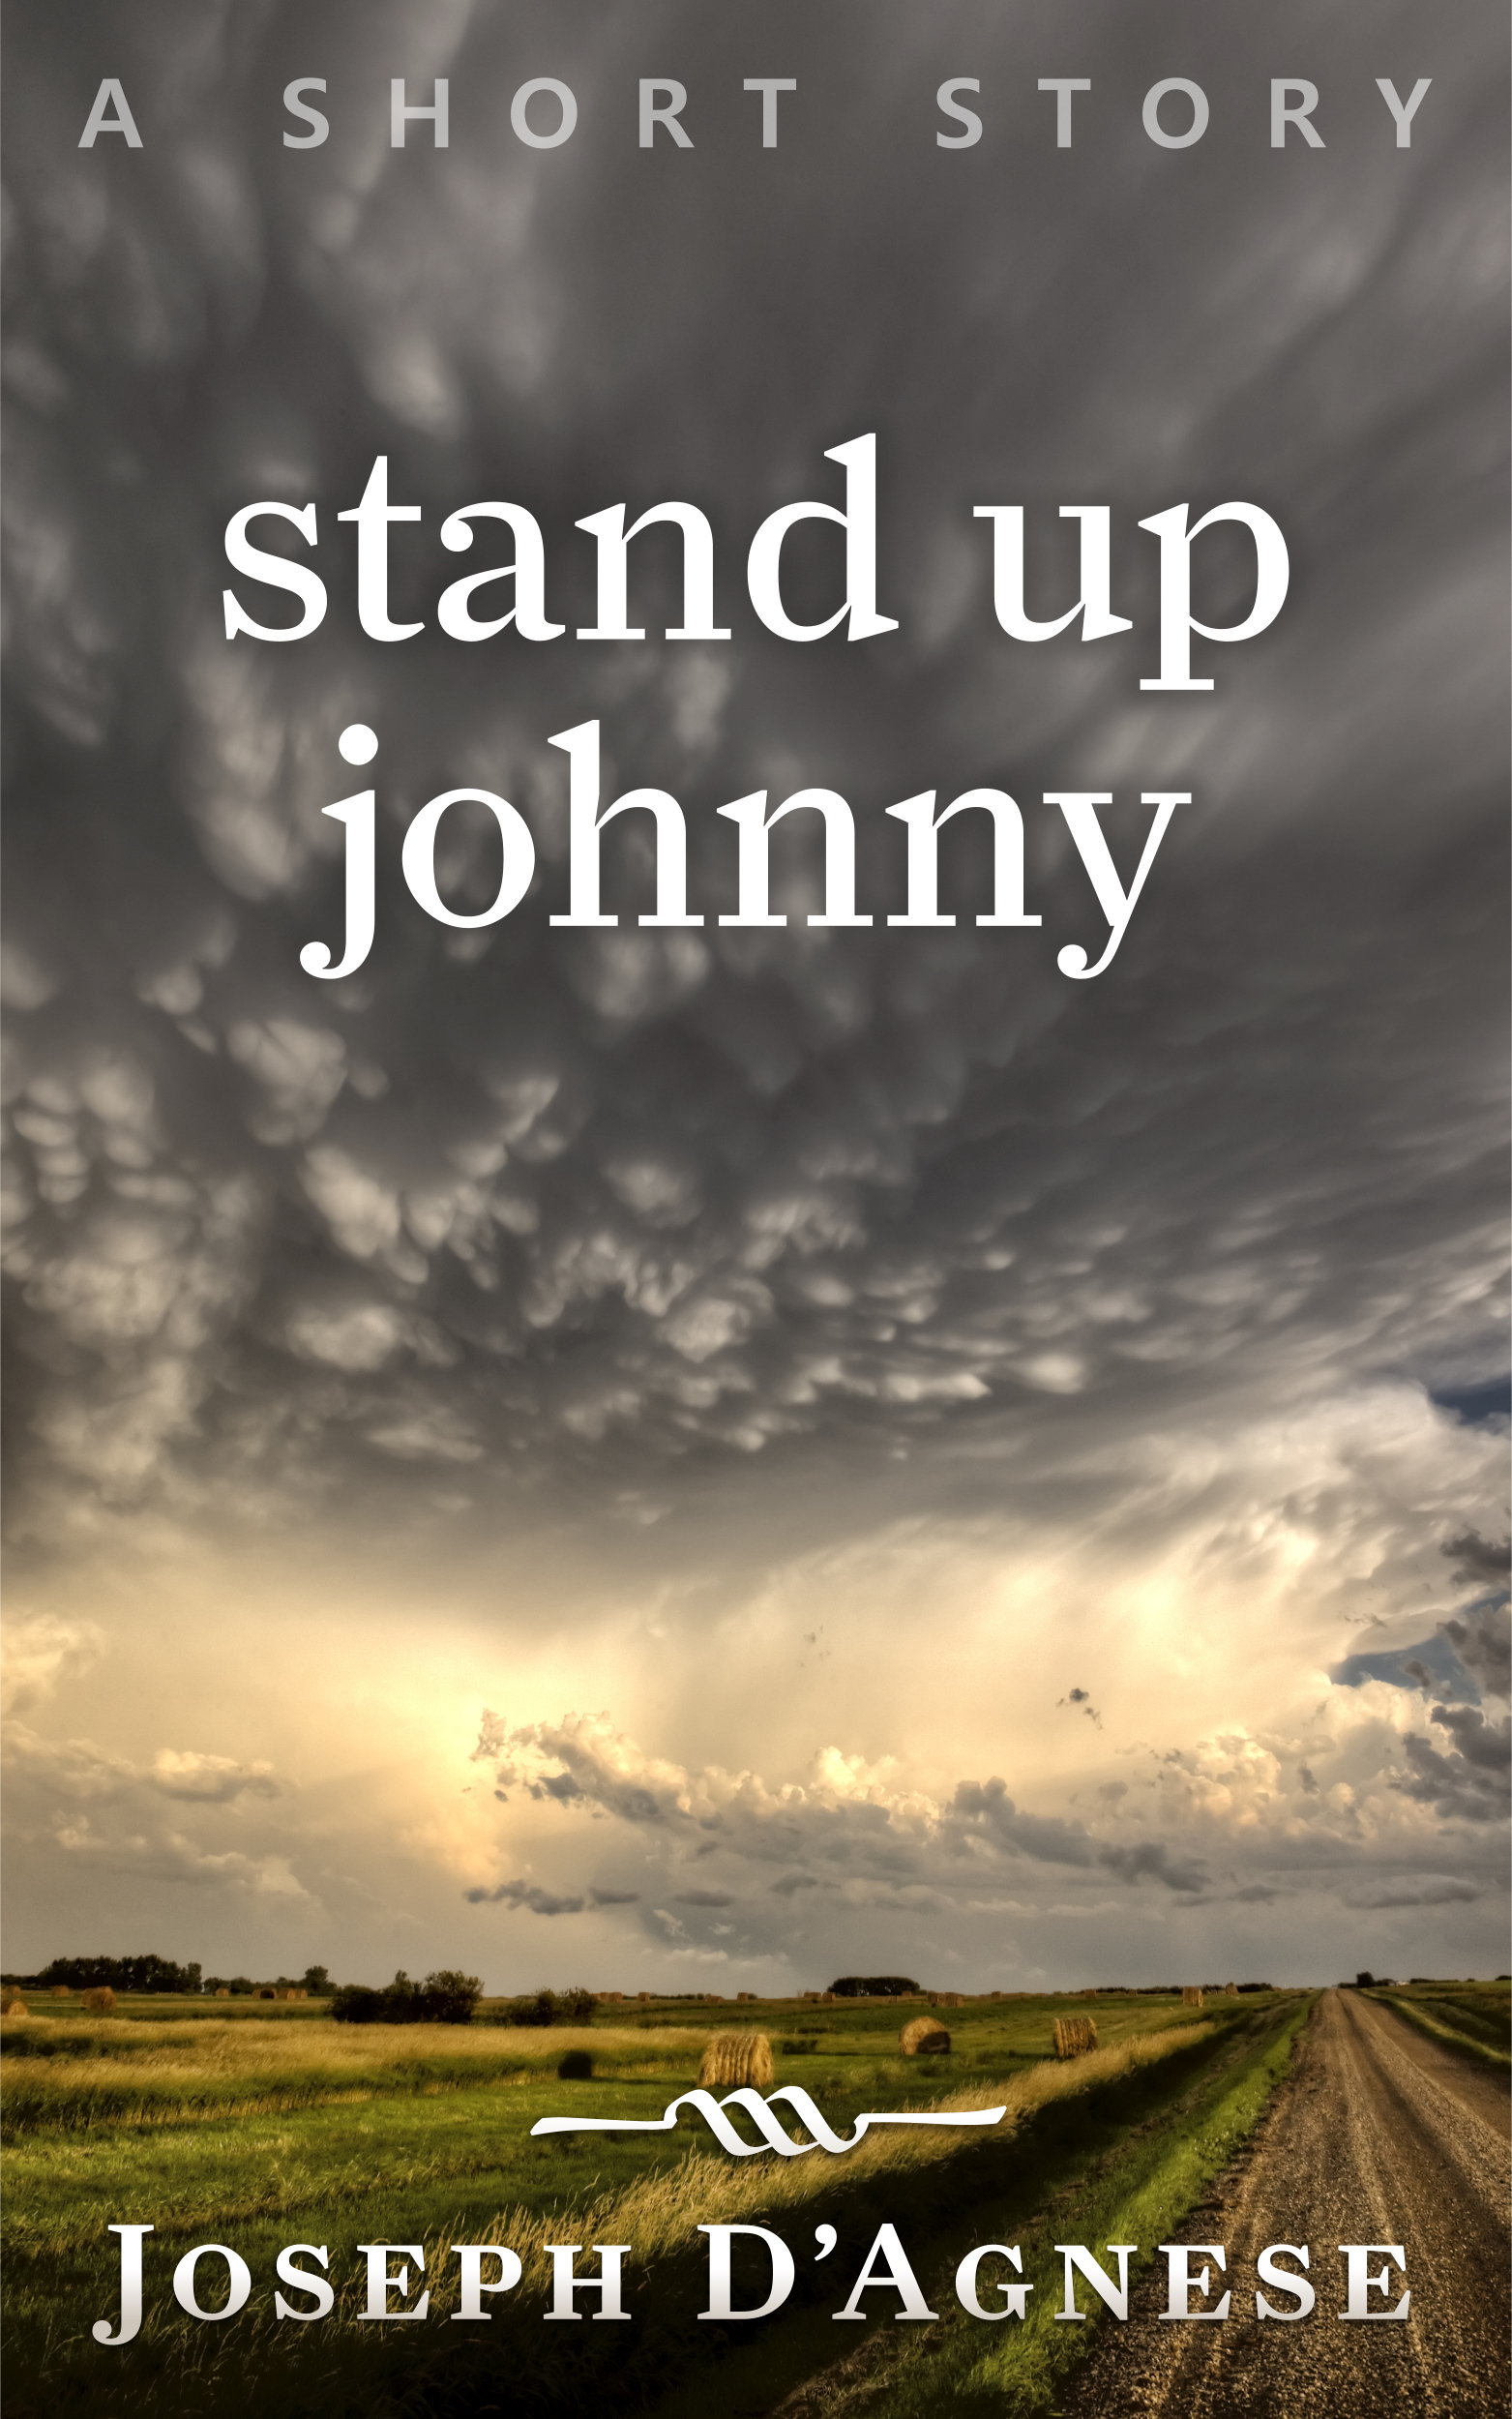 Stand Up Johnny, a short story by Joseph D'Agnese